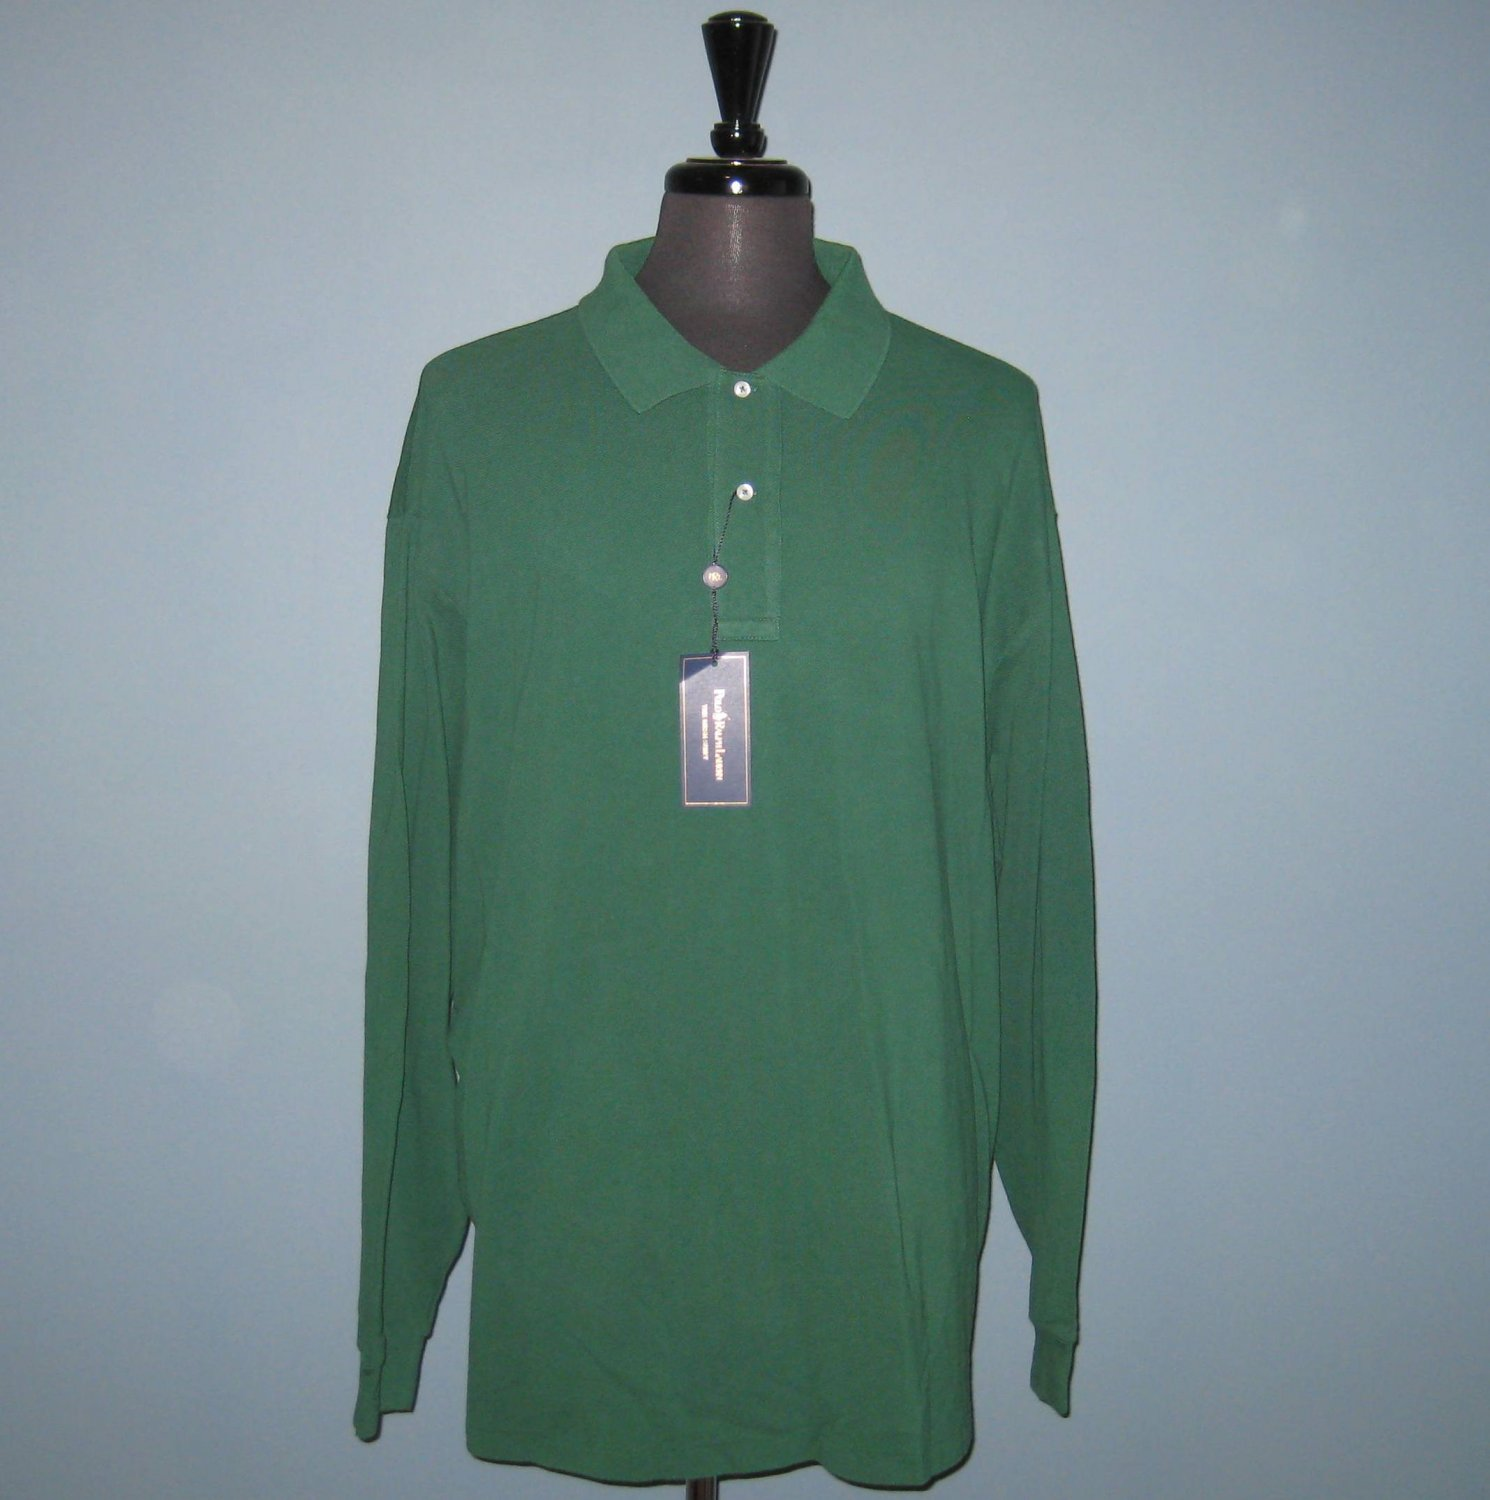 NWT Polo Ralph Lauren L/S Green Mesh Knit Polo Shirt - 3XB